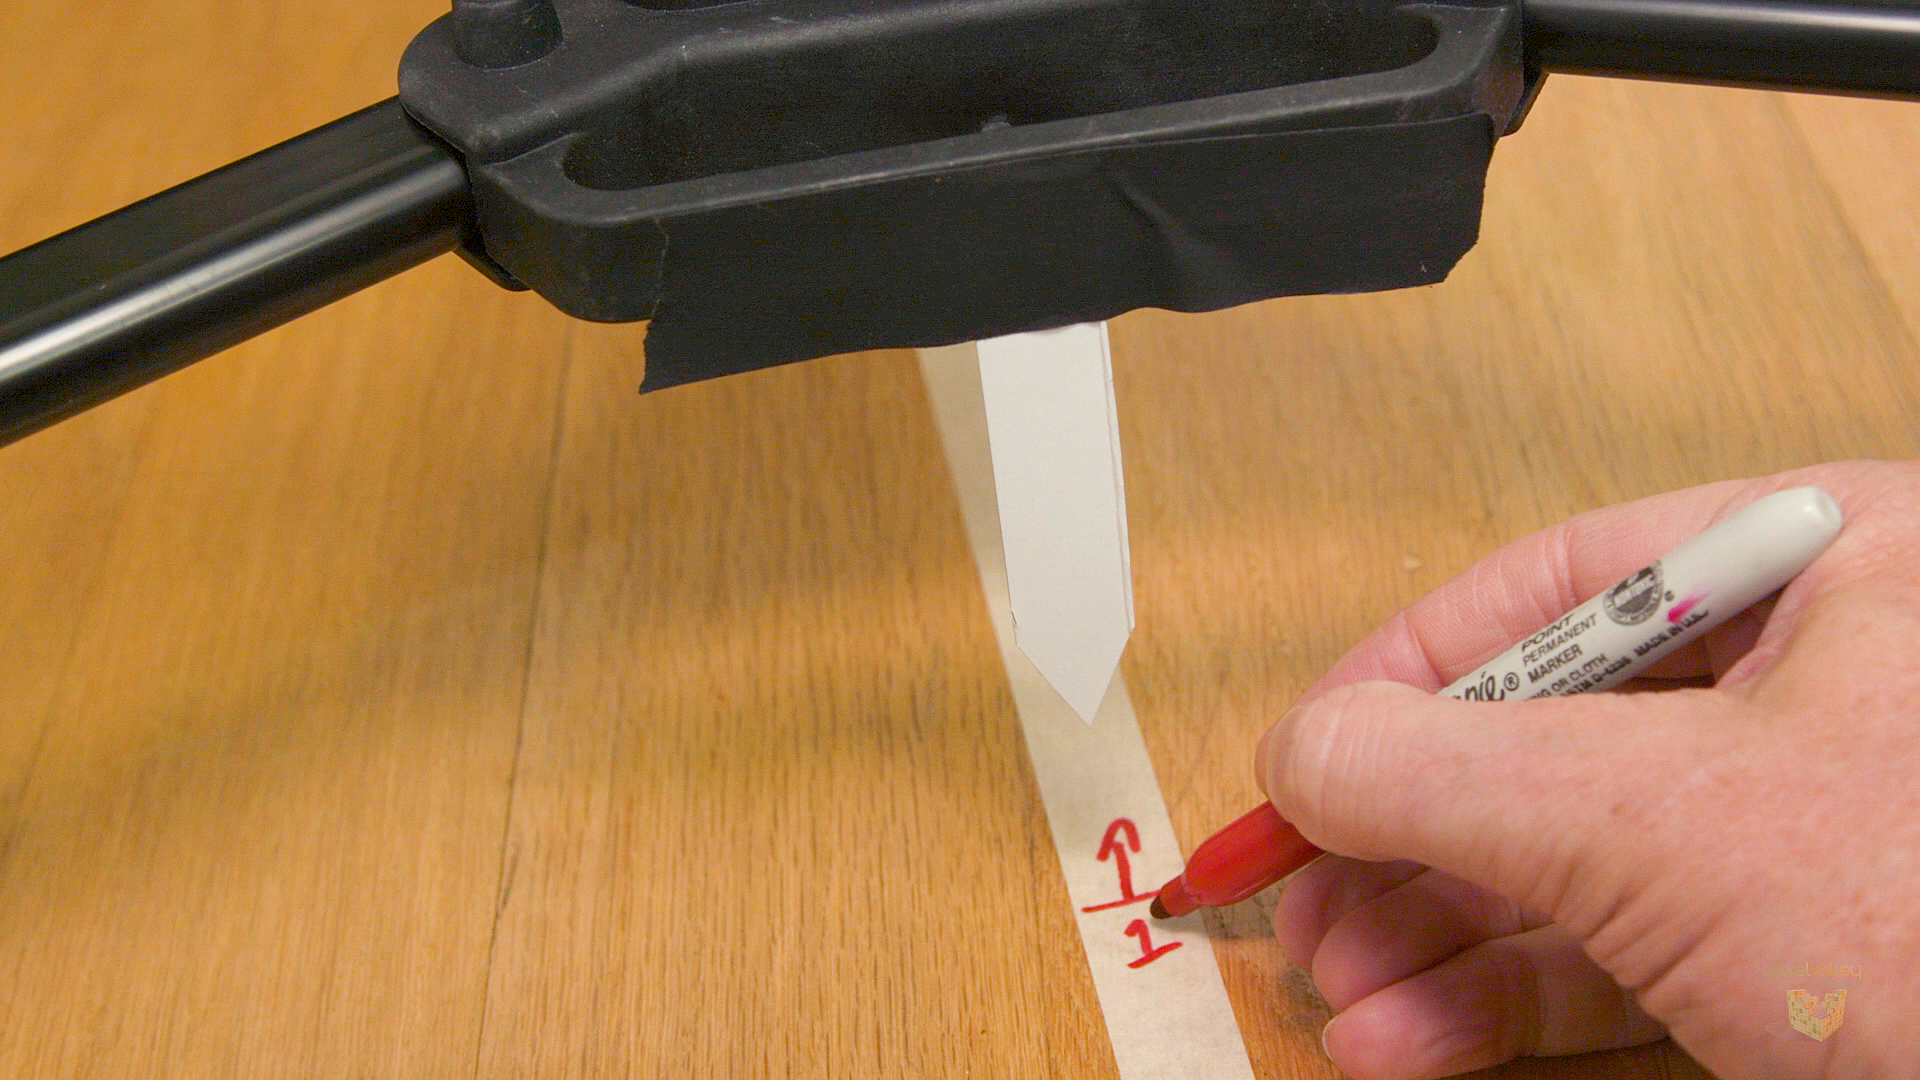 For a dolly move on the floor or track, we mark start/stop points on tape on the floor. But what about sliders?